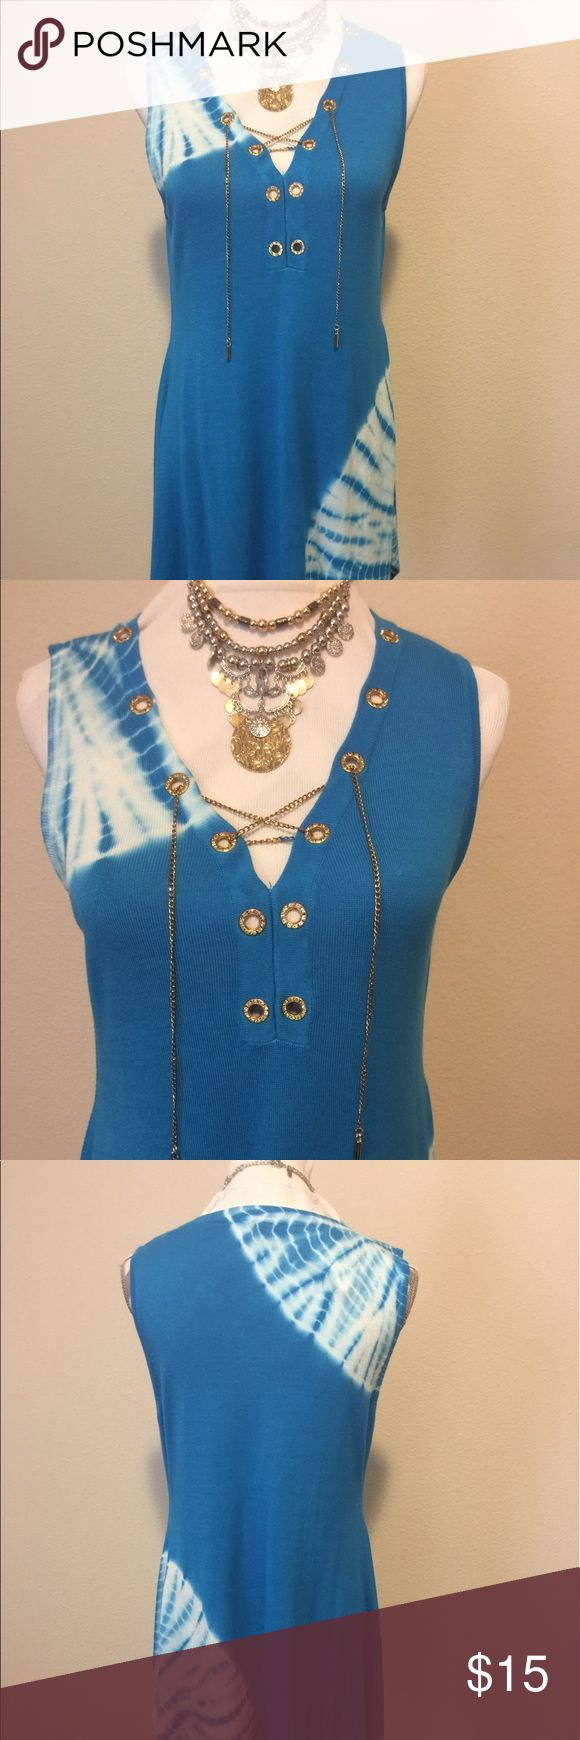 Beautiful blue and white top - L Beautiful blue and white blouse still has tags Rafiana Tops Blouses